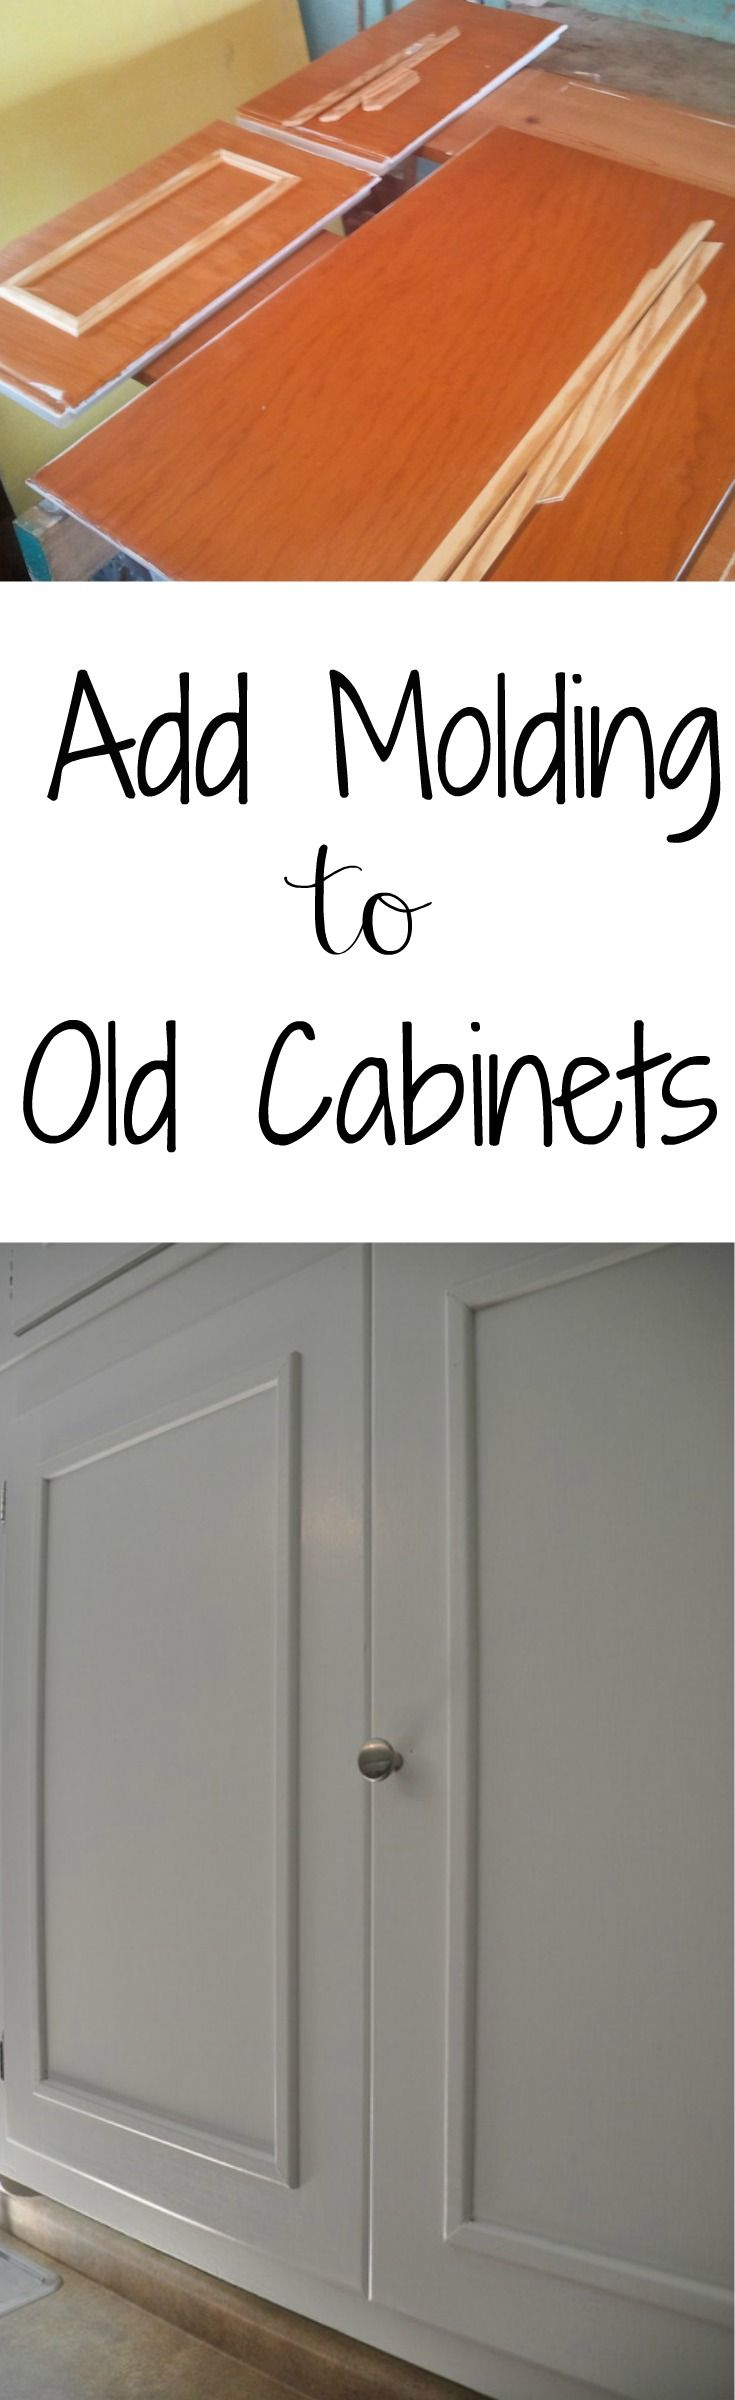 add molding to old cabinets great way to update old cabinets - Kitchen Cabinet Doors Ideas